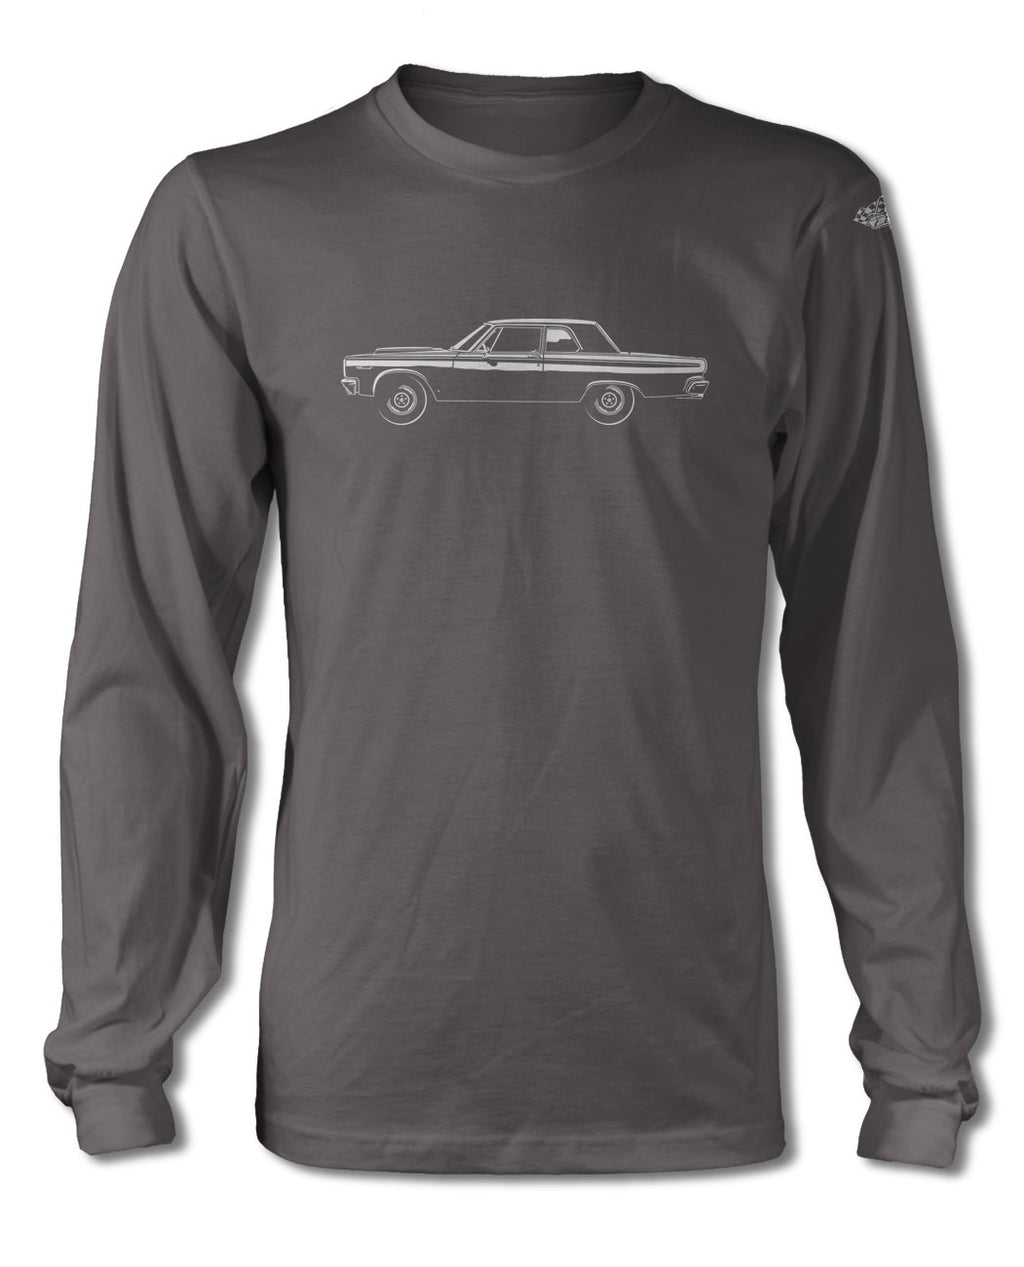 1965 Dodge Coronet Code A990 T-Shirt - Long Sleeves - Side View